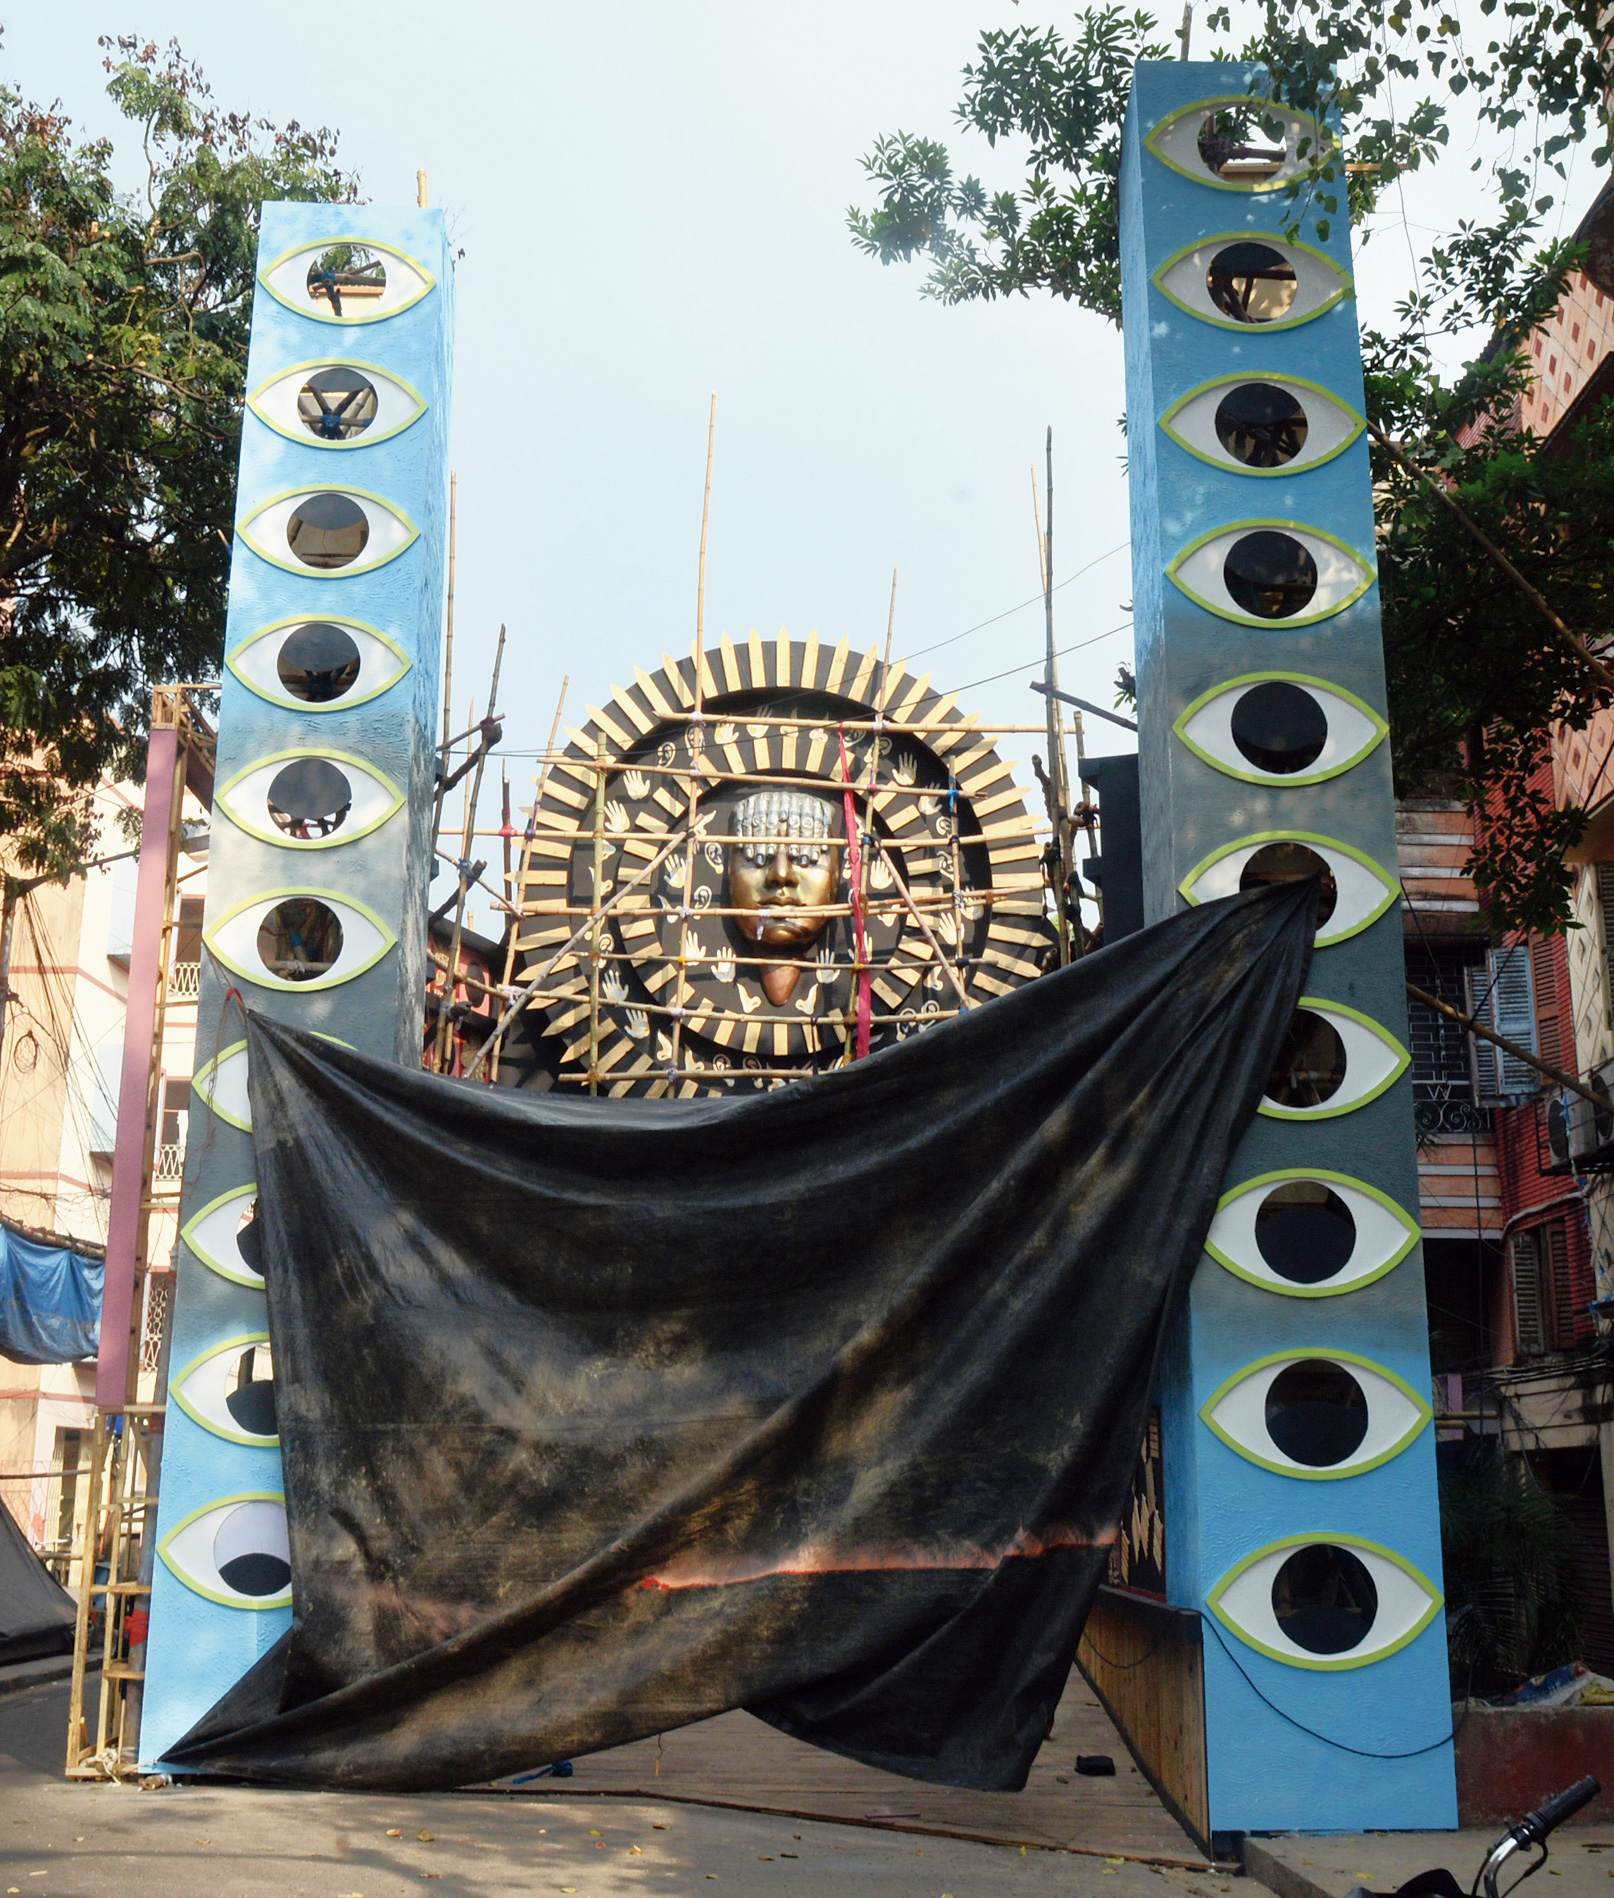 An artwork atop the pandal that suggests that the hands of a visually impaired person are his/her eyes.